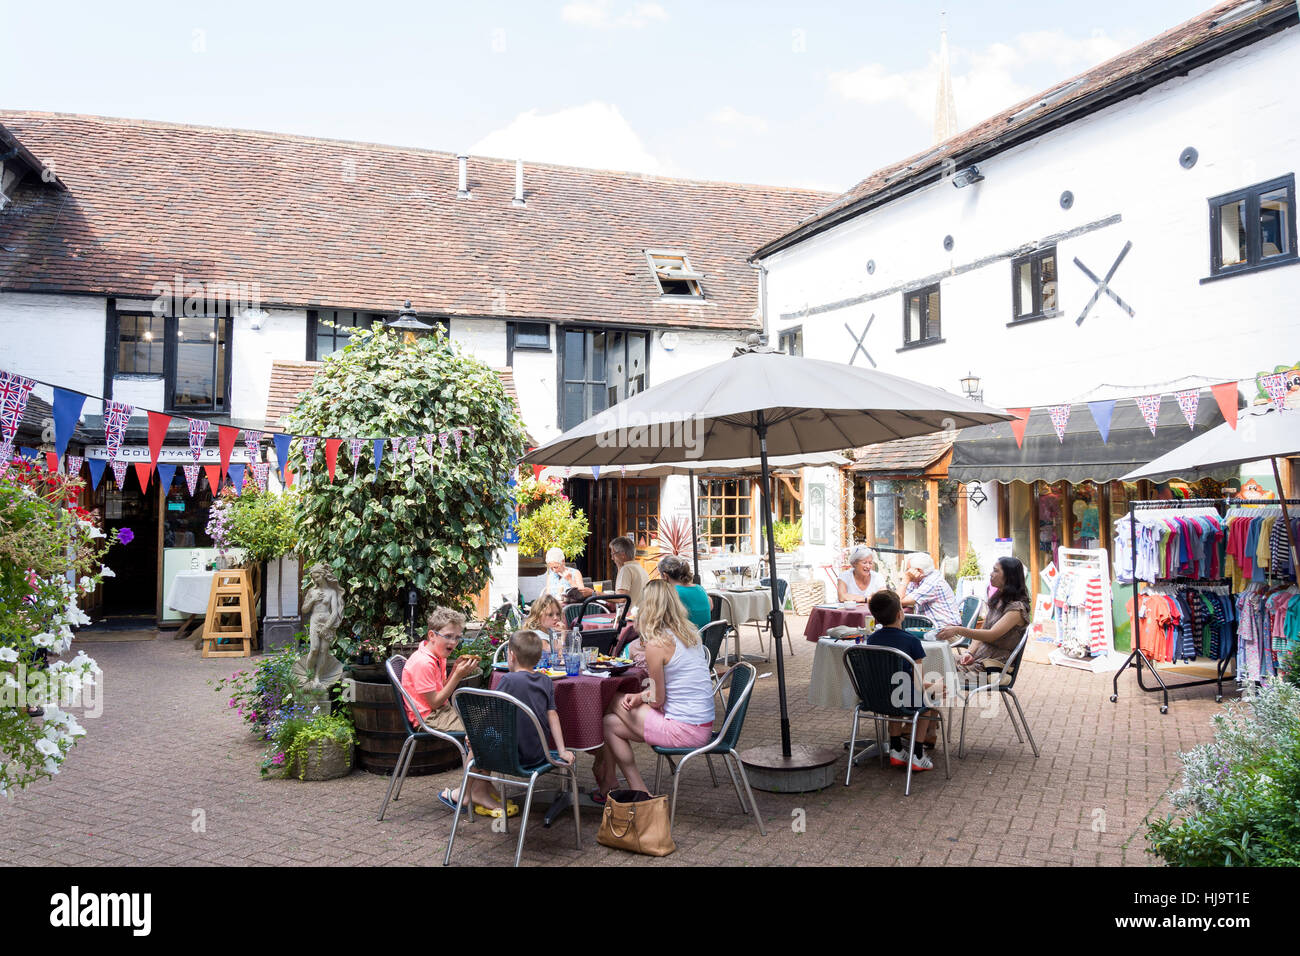 Old Kings Head Court, High Street, Dorking, Surrey, England, United Kingdom - Stock Image